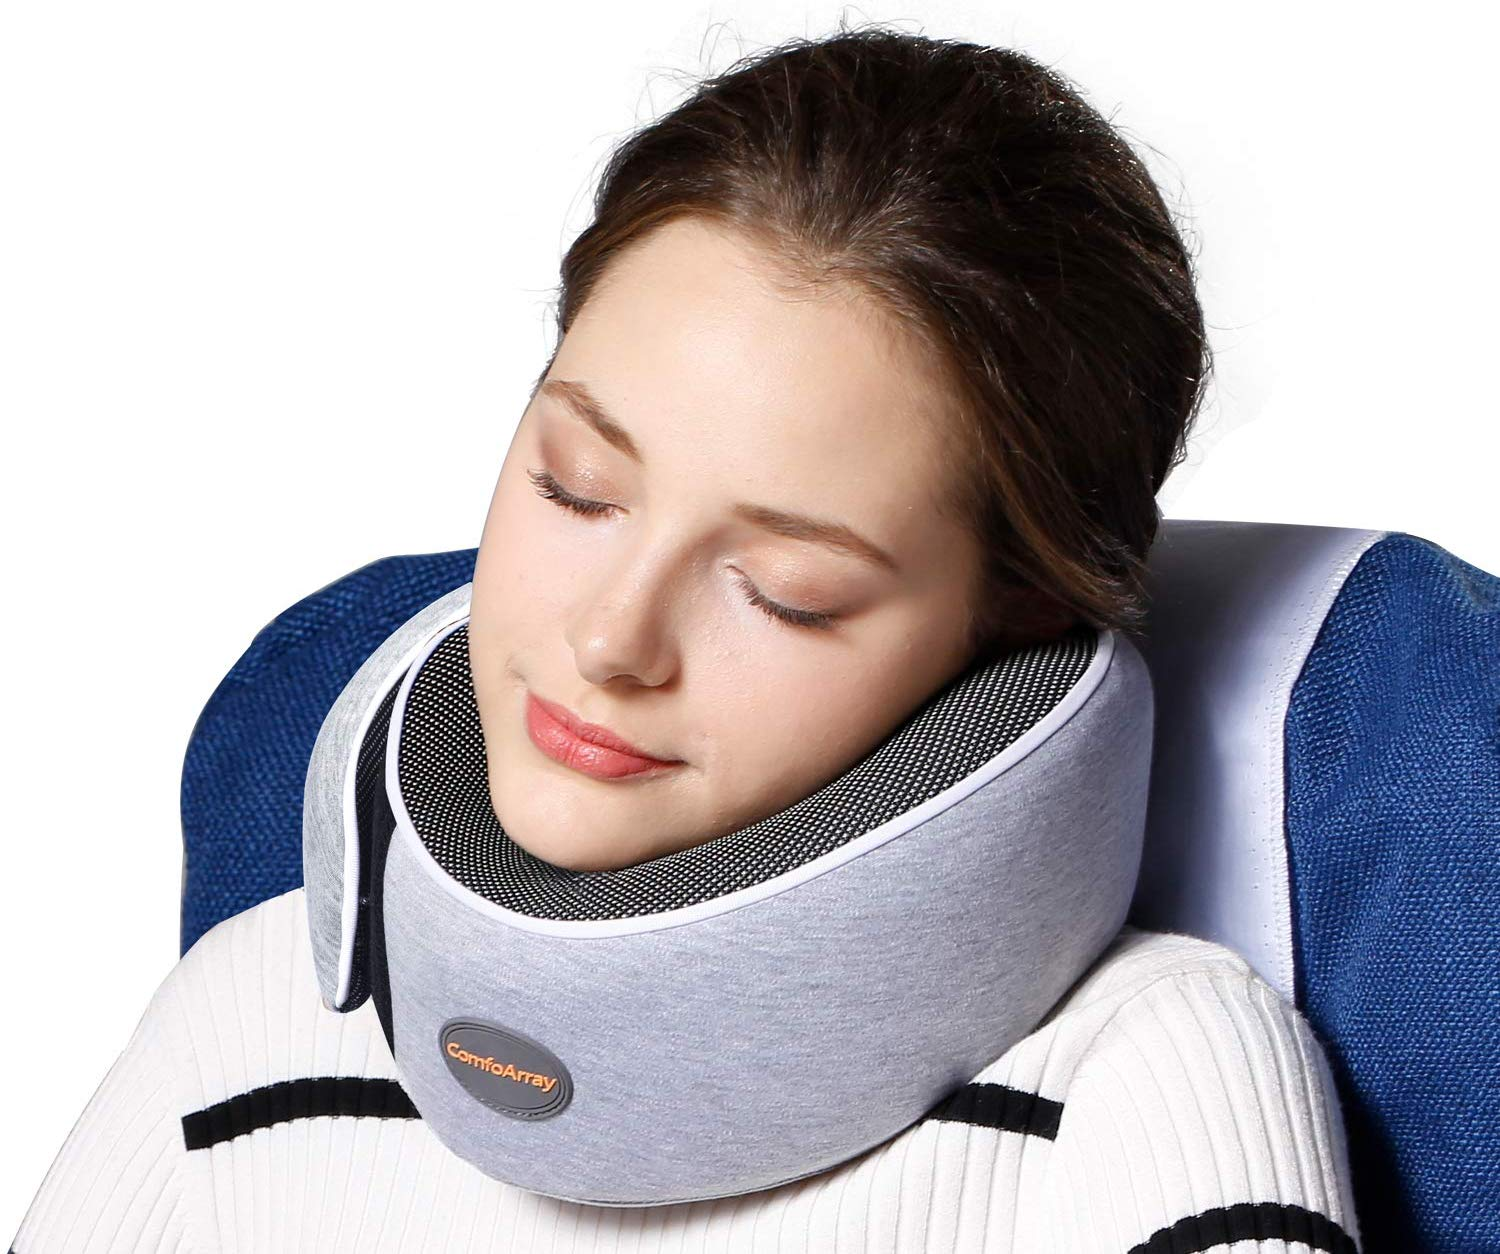 ComfoArray Travel Pillow, Neck Pillow with Head Support Design, Travel Pillow for Airplanes